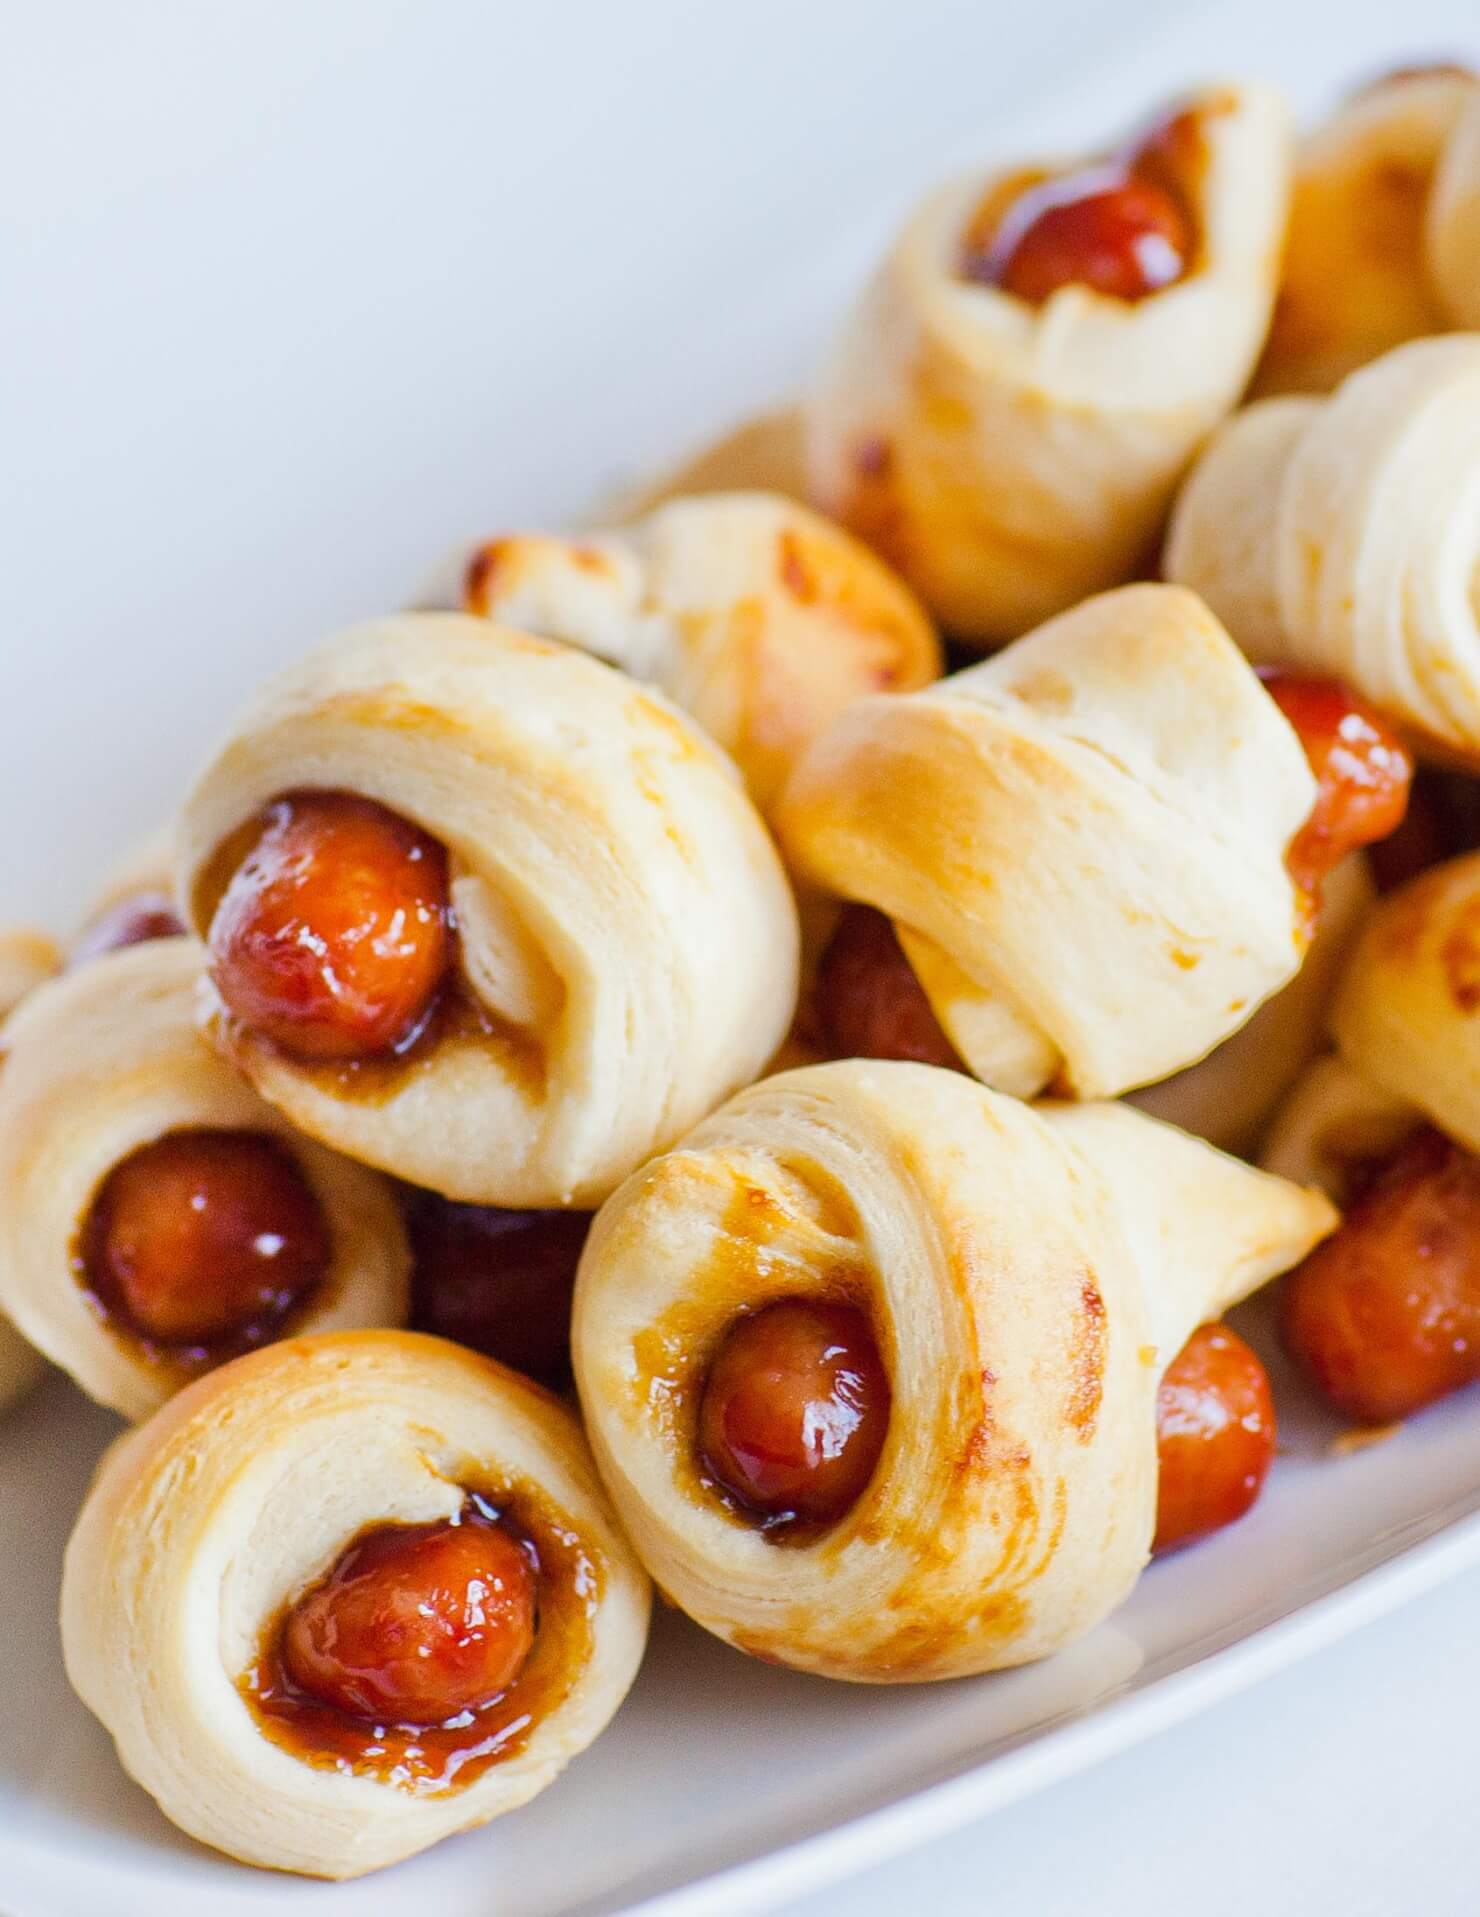 teriyaki glazed mini sausage in dough